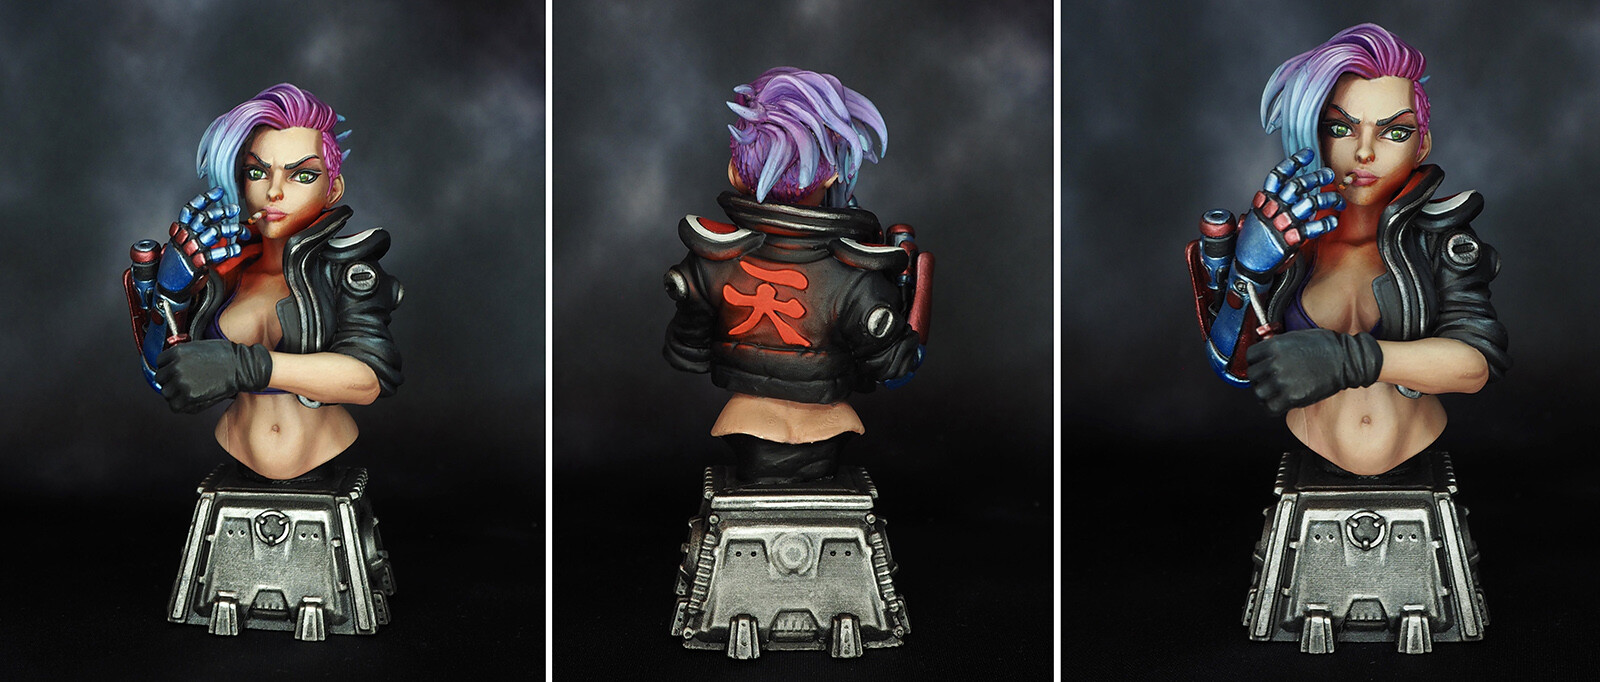 Final version of the bust painted by Em (ElectricEve)